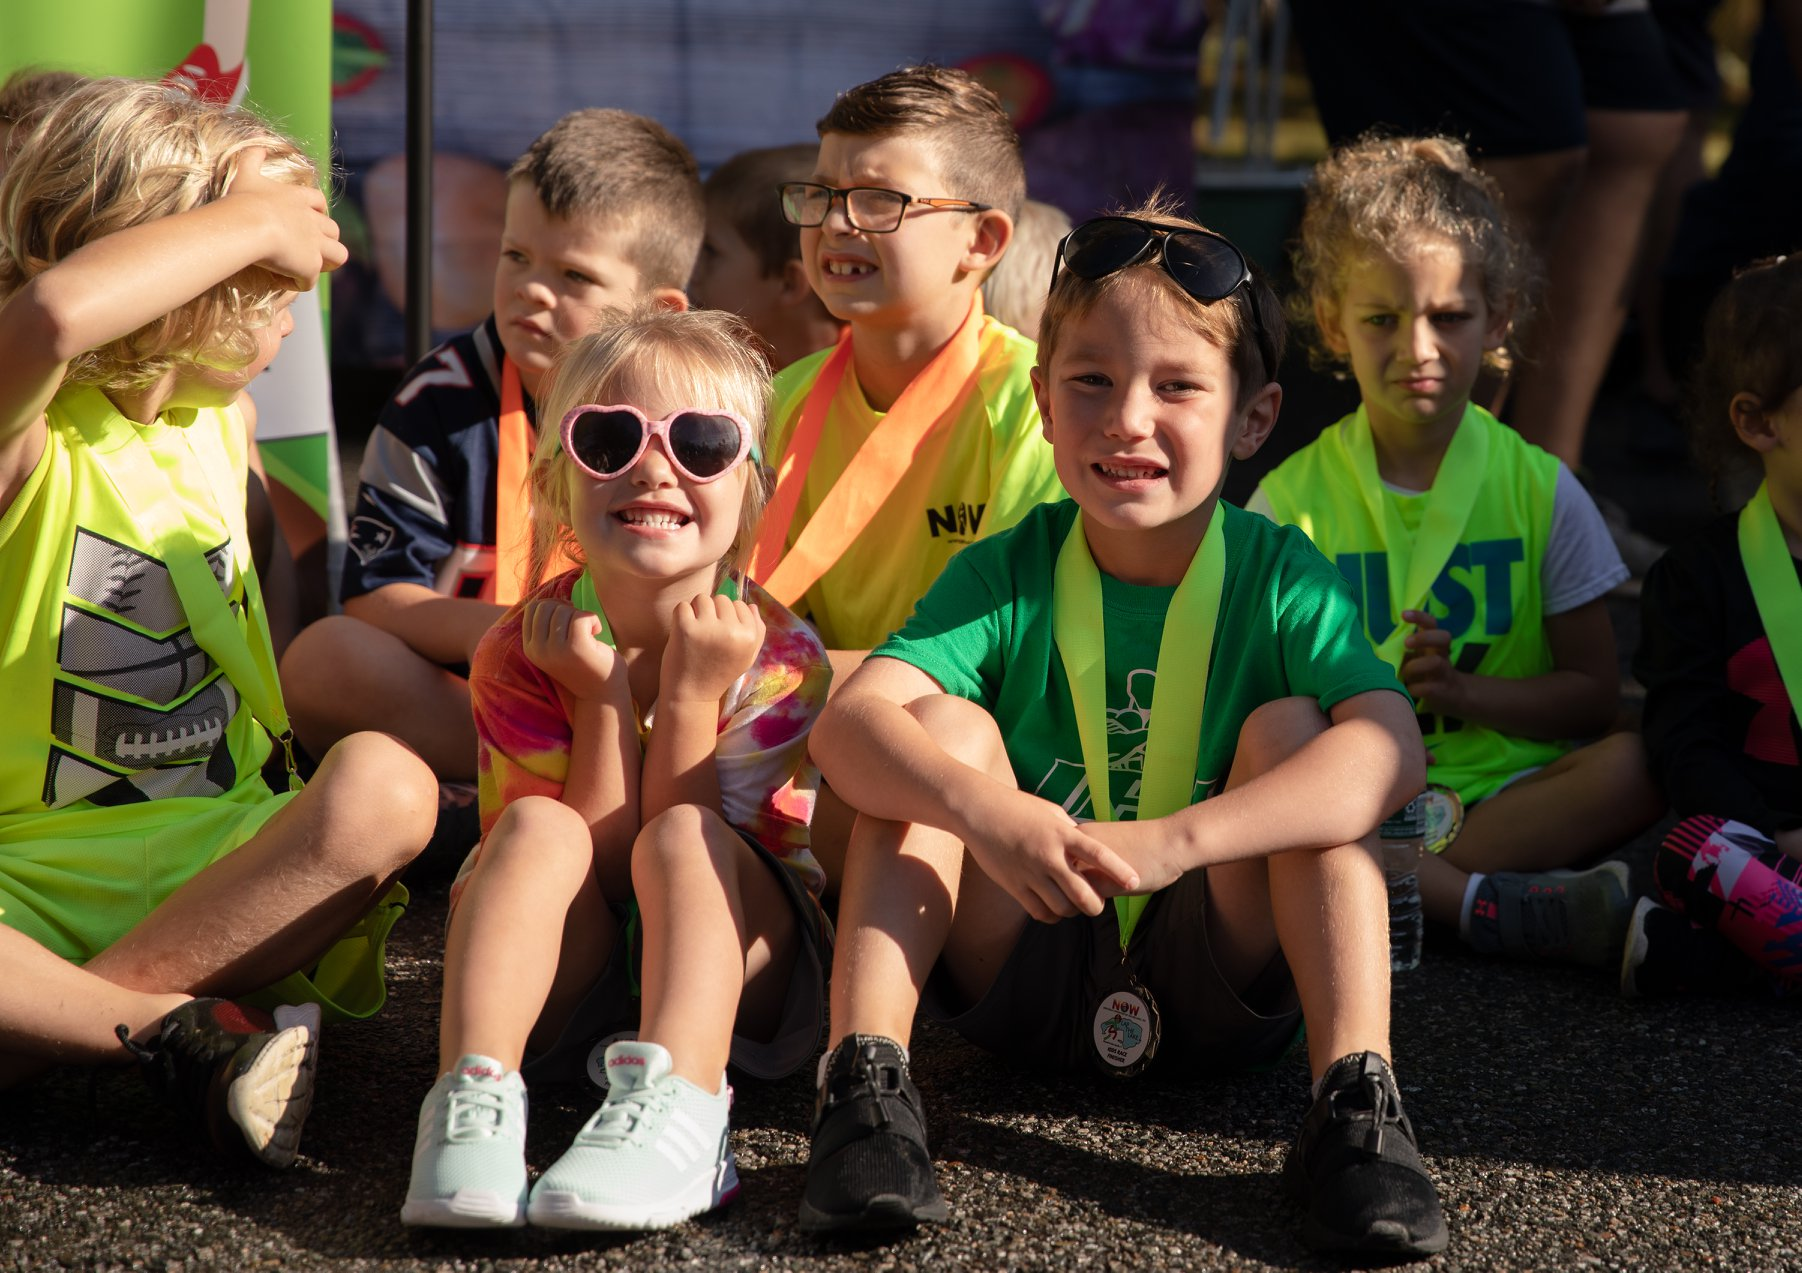 kids sitting and smiling with race medals